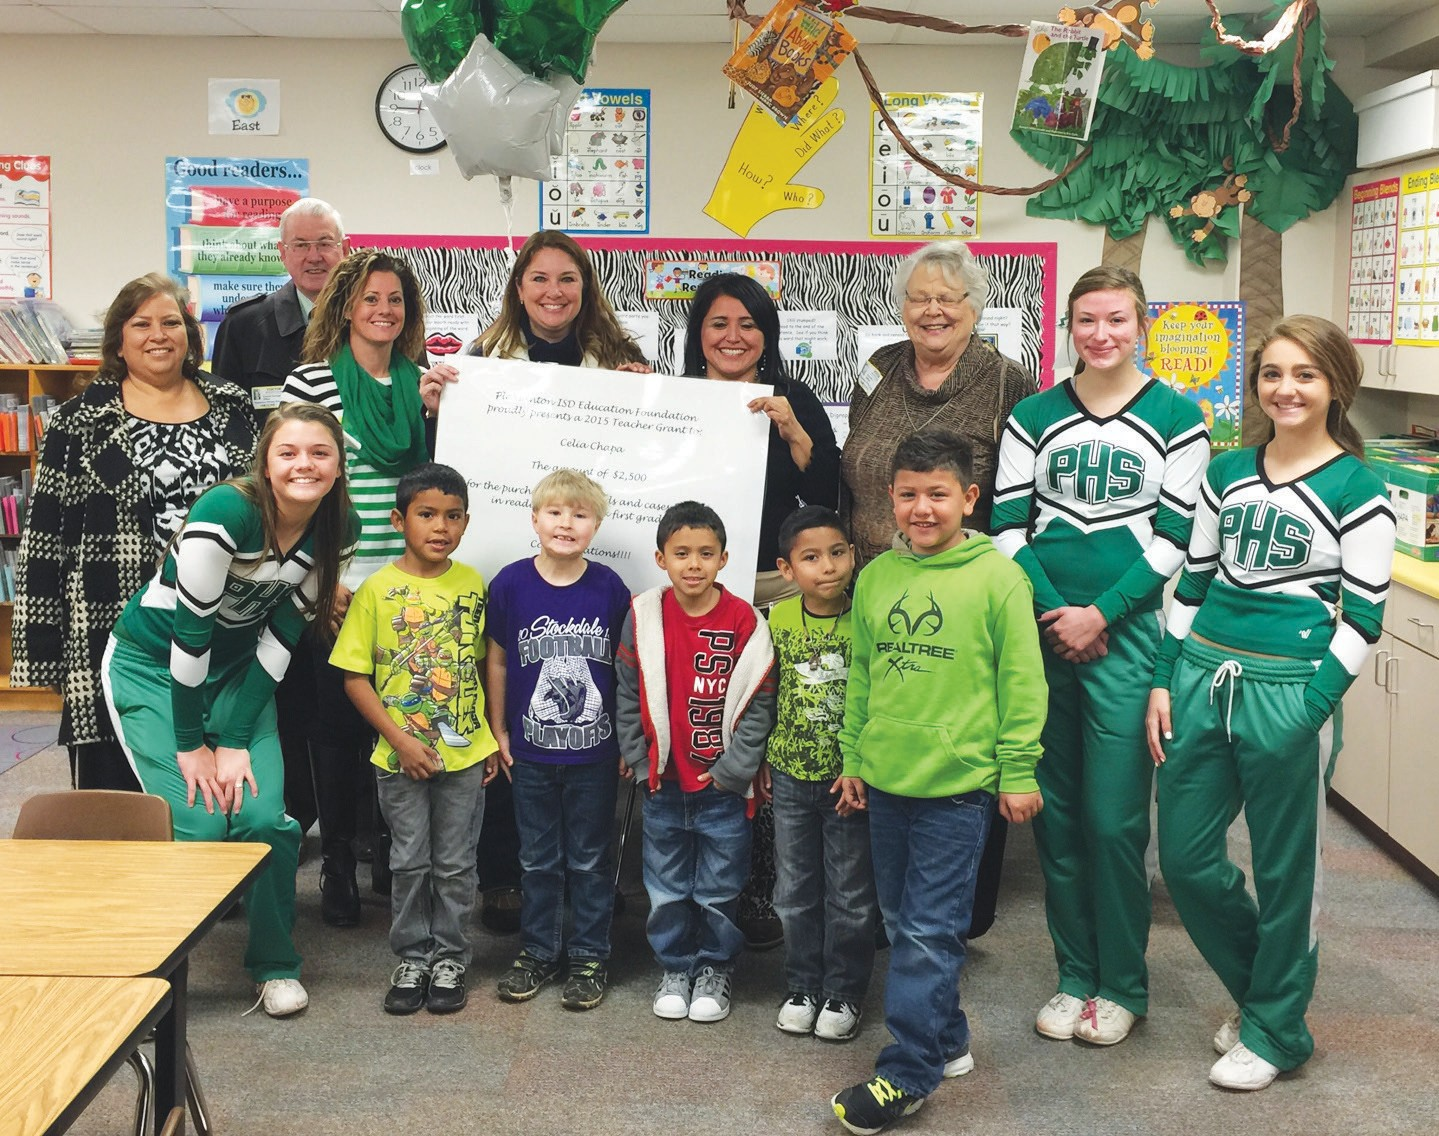 Celia Chapa a reading interventionist at the Pleasanton Primary received $2,500 to purchase iPads to improve reading skills.